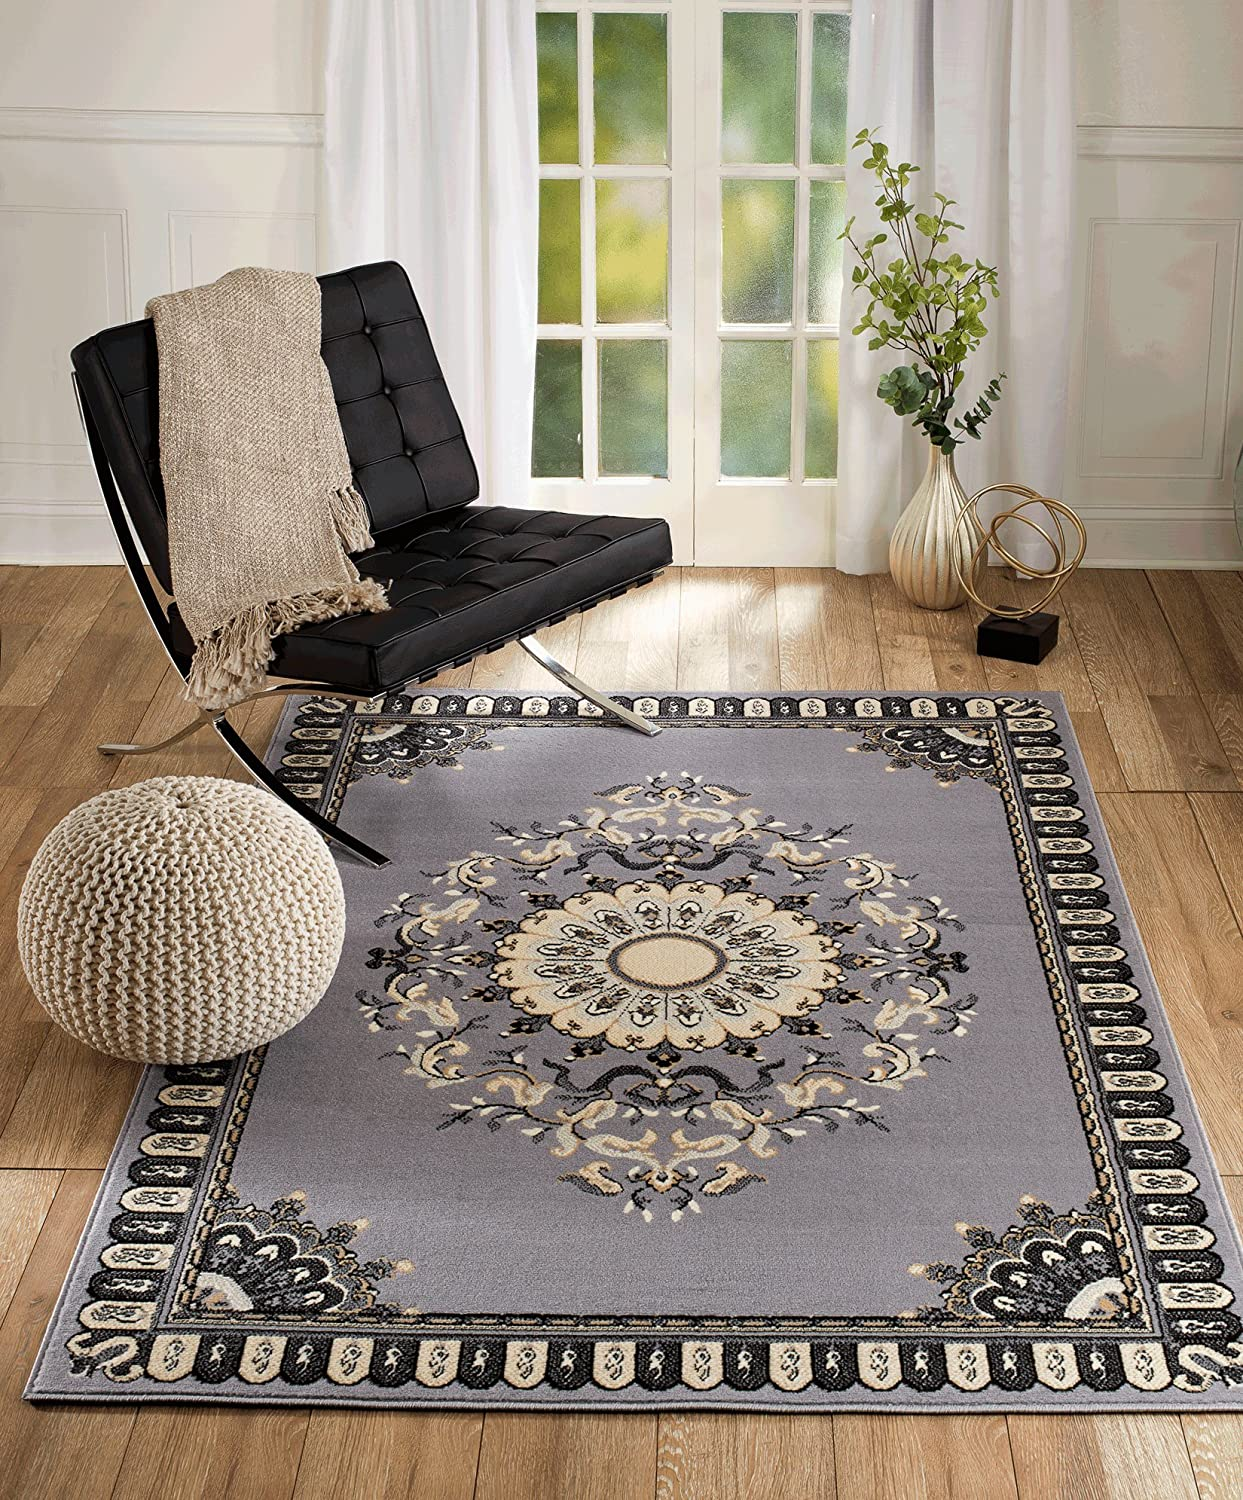 New Chateau S2 Grey Black Oriental Persian Style Area Rug (2X3 Scatter MAT/Actual Size is 22 INCH X 35 INCH) CHATEAU RUGS CHTU#02gray/2X3